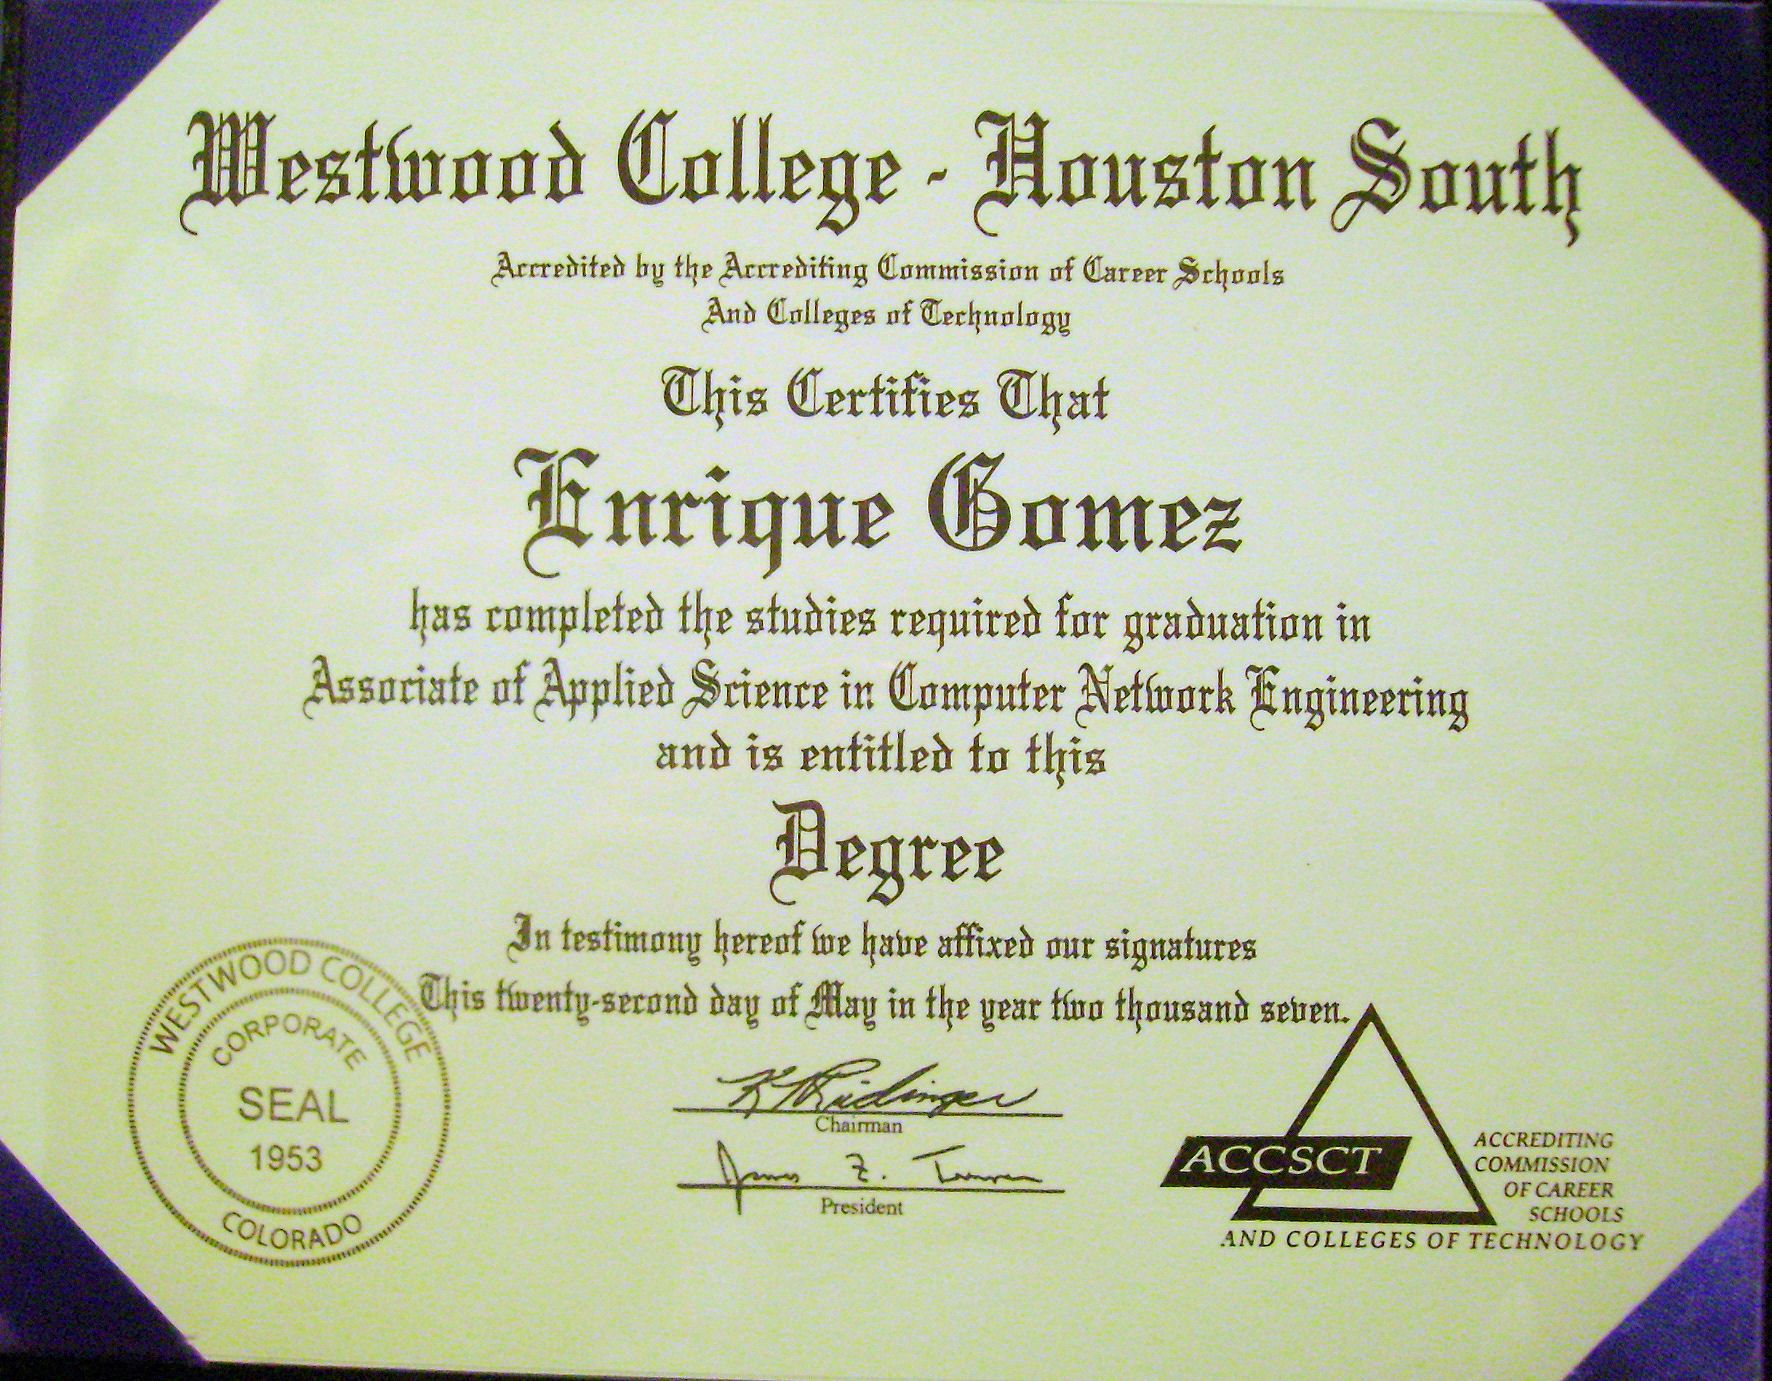 my associate degree in computer network engineering from